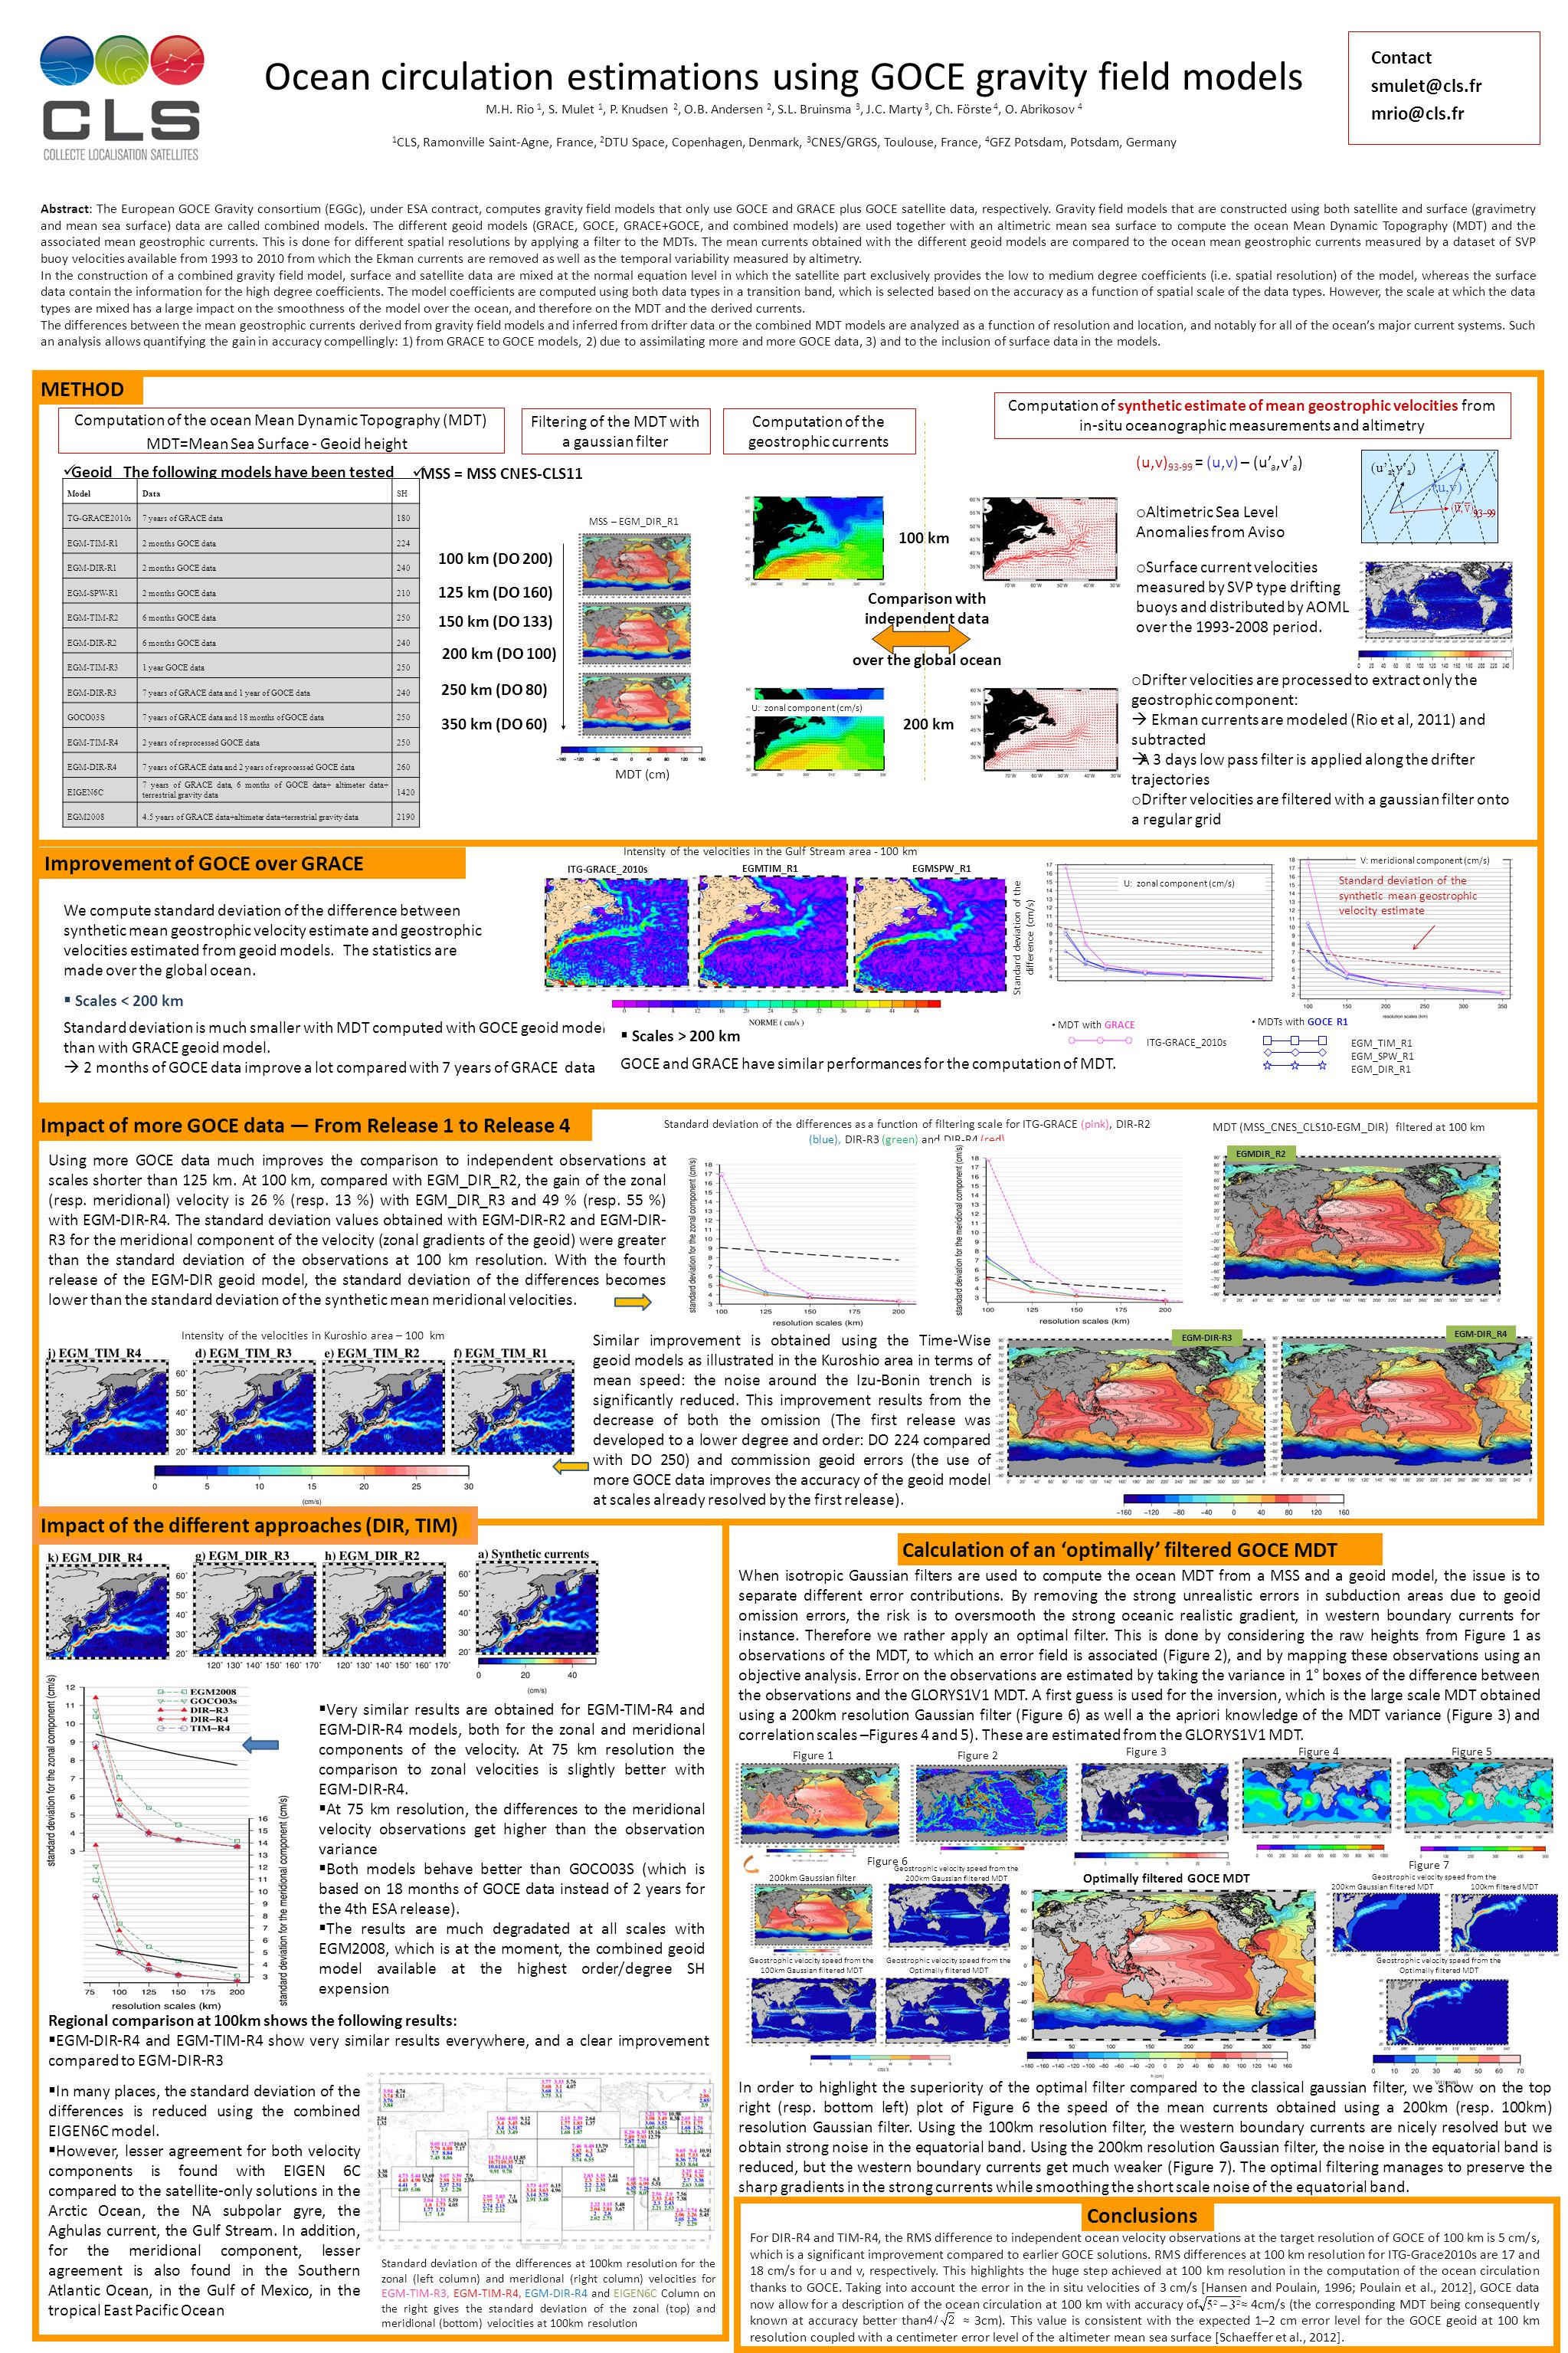 Ocean circulation estimations using GOCE gravity field models M.H. Rio 1, S. Mulet 1, P. Knudsen 2, O.B. Andersen 2, S.L. Bruinsma 3, J.C. Marty 3, Ch